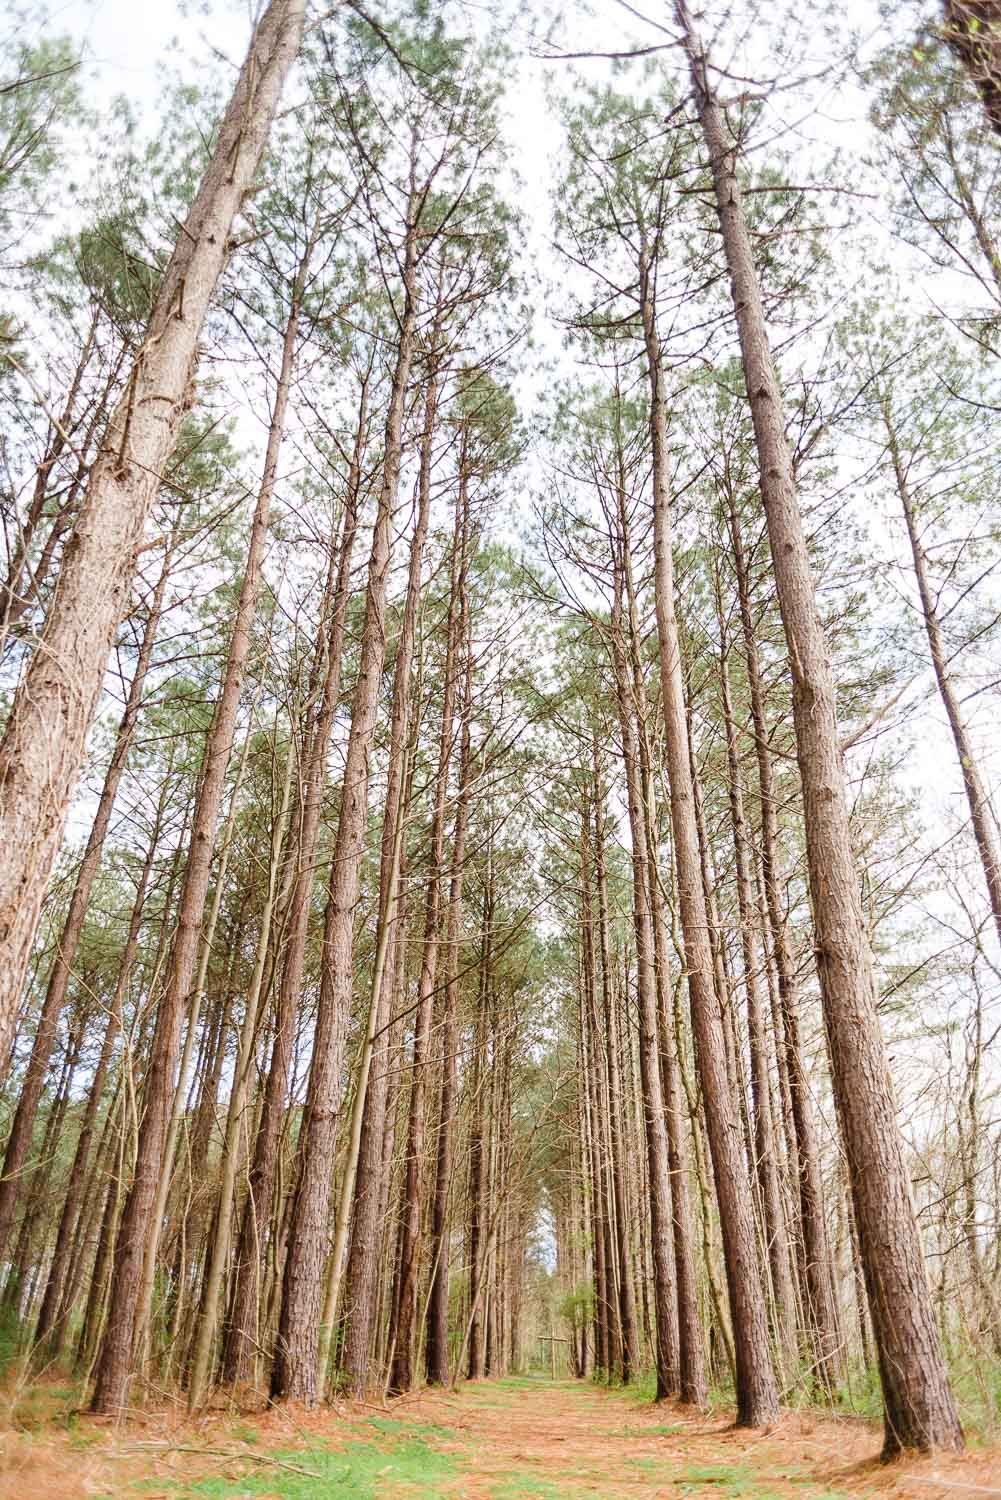 looking up at the tall tall pines at Hiwassee River weddings on the pathway to the cross